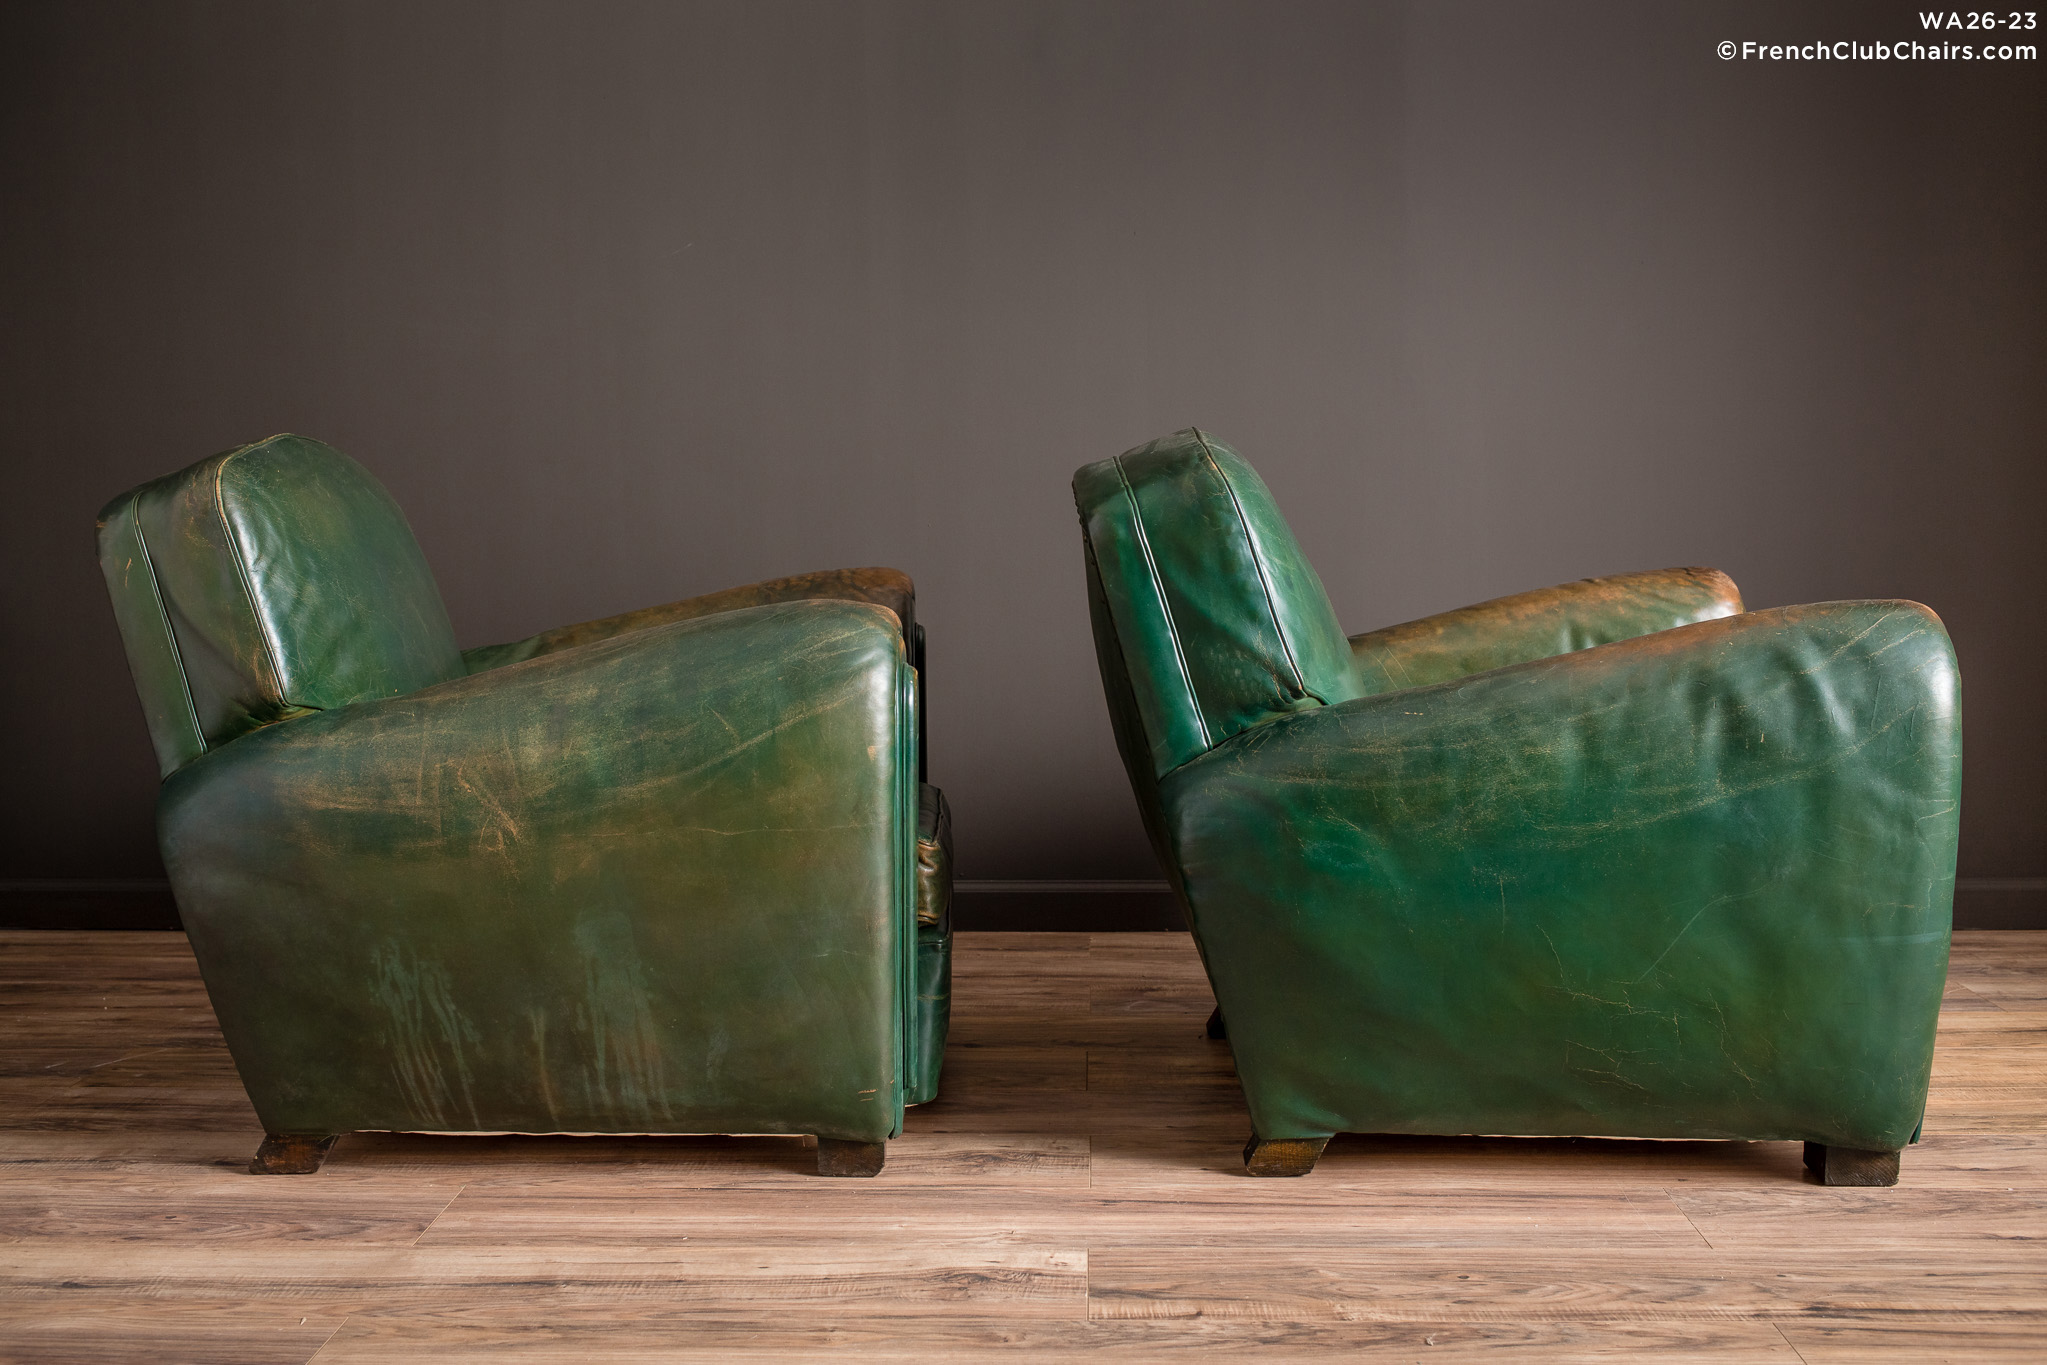 WA_26-23_Chairs_Green_Salon_Library_R_3RT-v01-williams-antiks-leather-french-club-chair-wa_fcccom